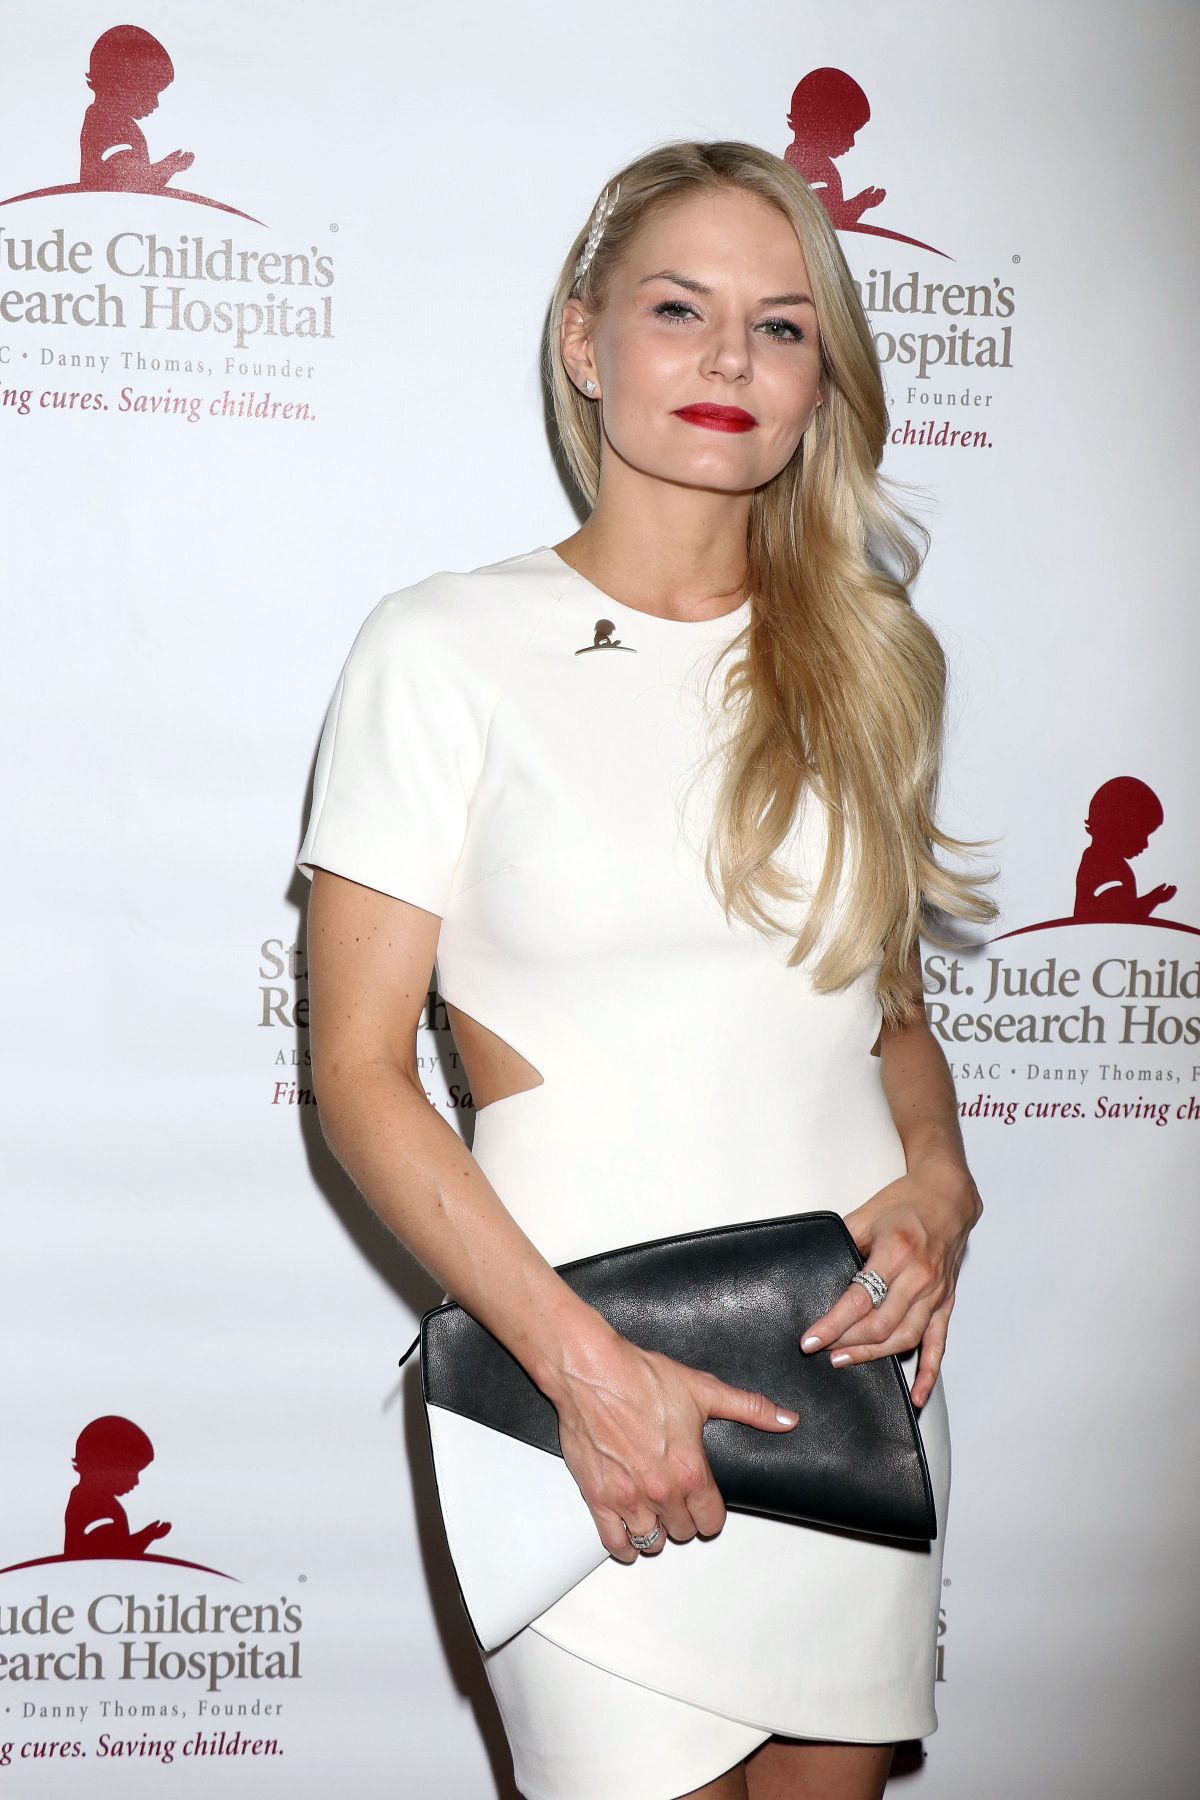 JENNIFER MORRISON at St. Jude Against All Odds Celebrity Poker Tournament in Las Vegas 11/07/2015